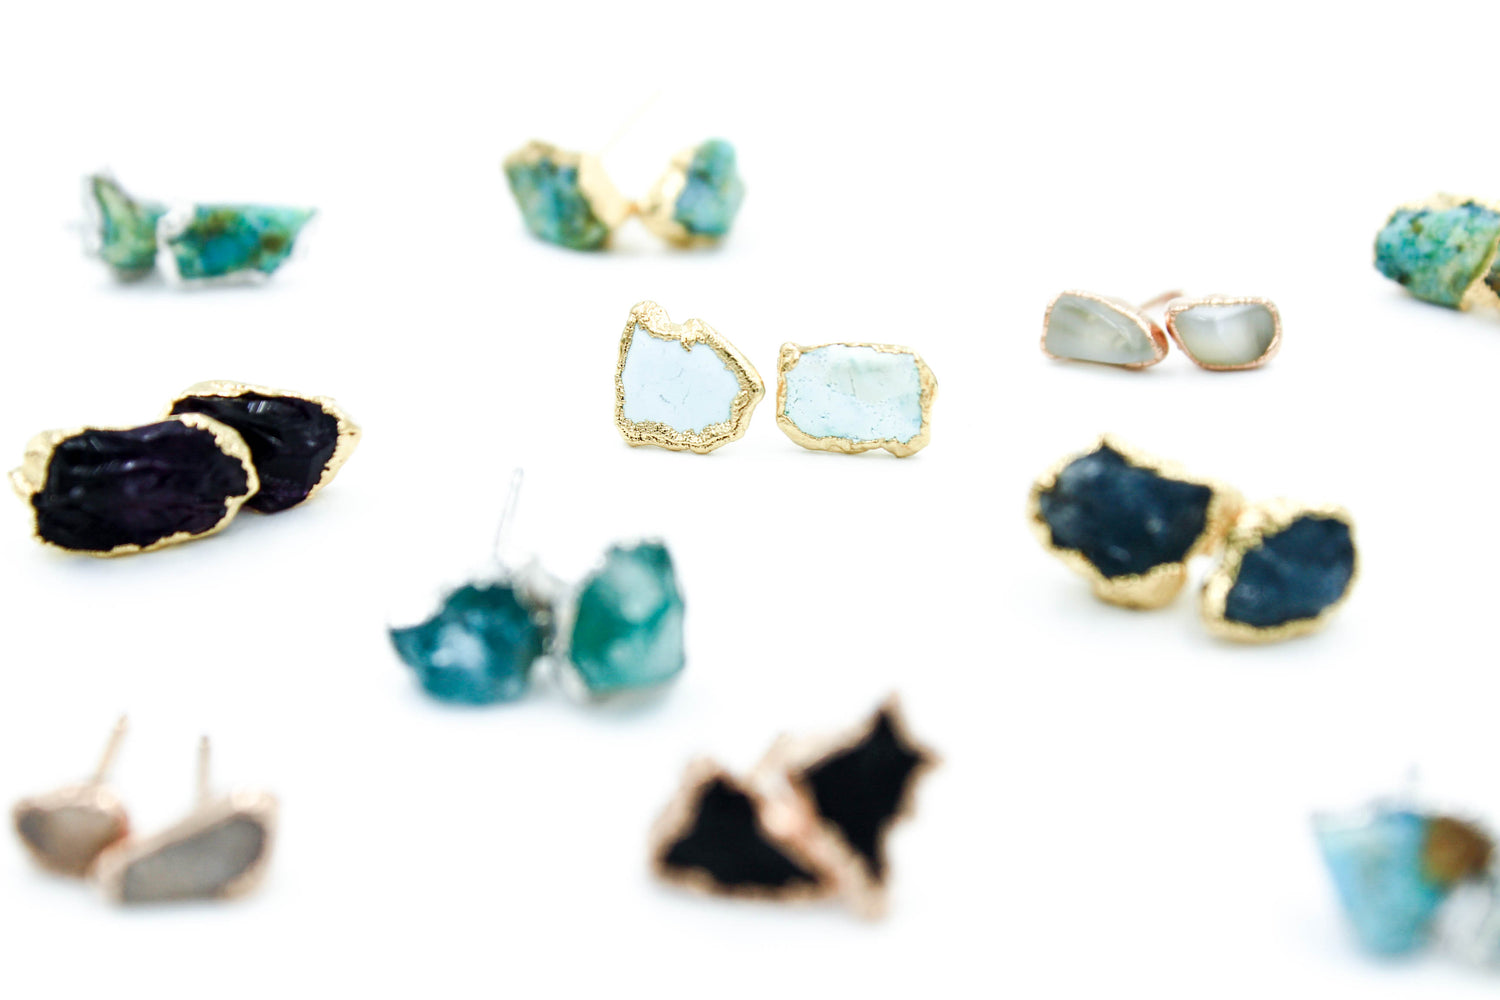 raw gemstone earrings, electroformed, emerald, turquoise, blue apatite, black tourmaline, pink tourmaline, rose quartz, moonstone, amethyst, sapphire, garnet, opal, diamond, herkimer diamond, 24k yellow gold, 18k rose gold, rhodium